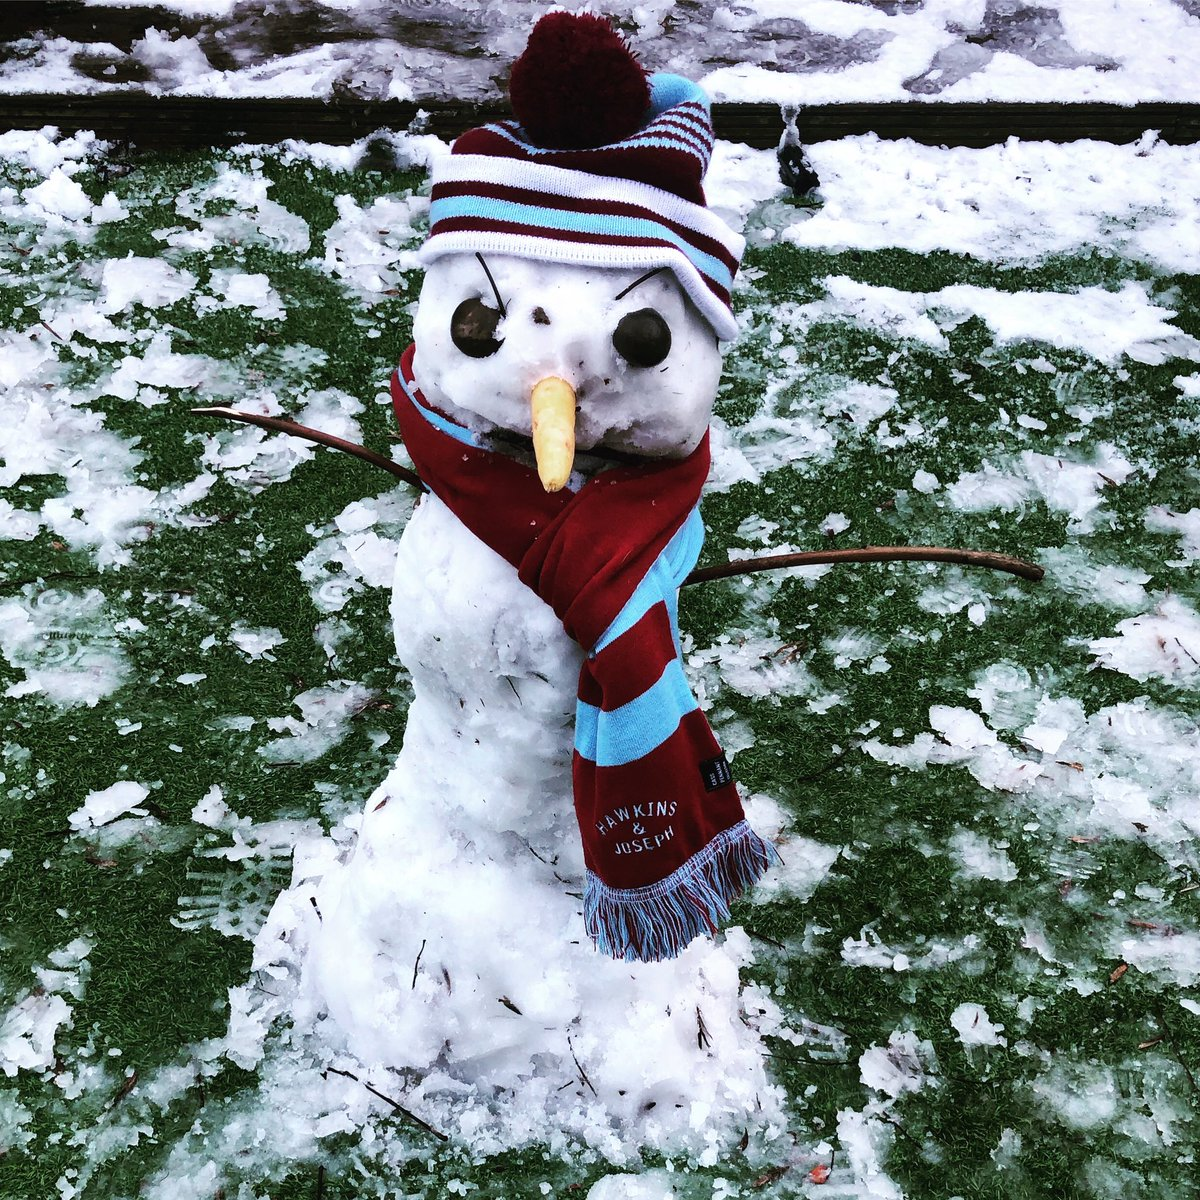 Exceptional bit of snow-manning by me and the kids. He looks a bit moody, mind you. #coyi #WHUFC #snow